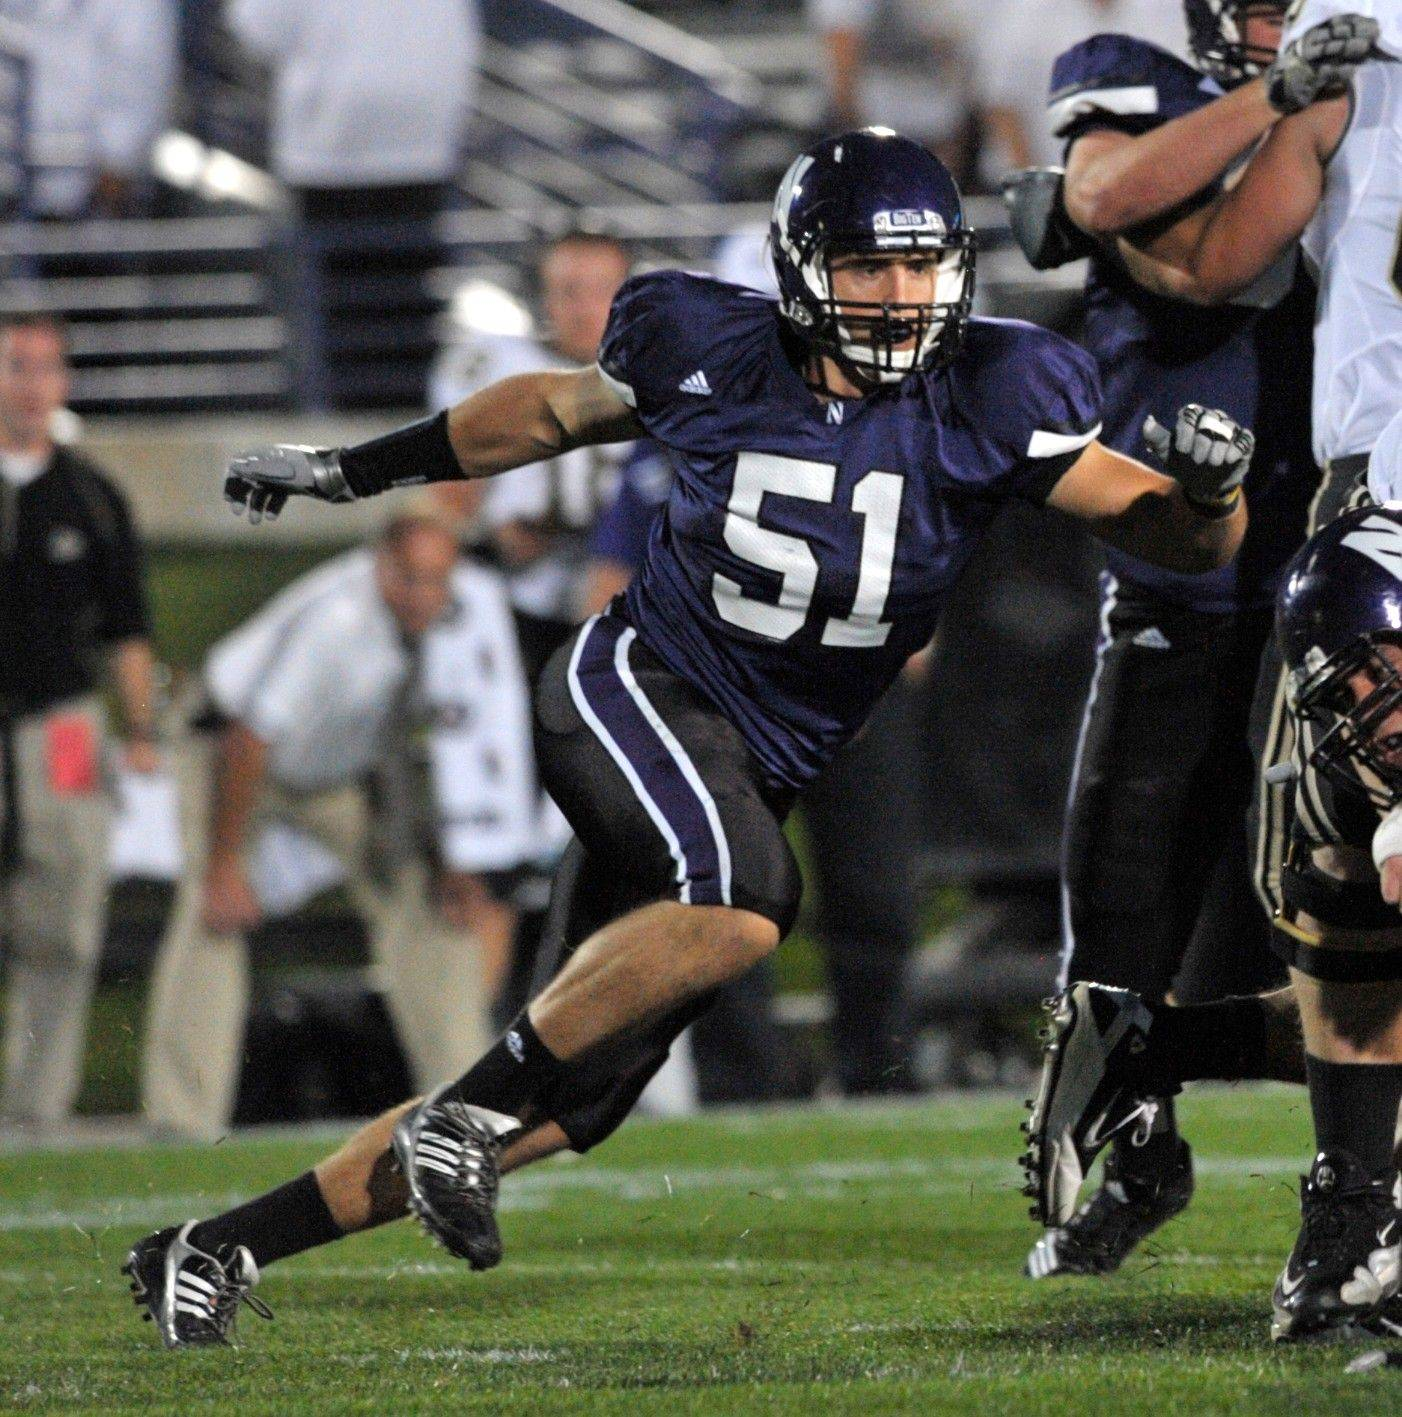 Bryce McNaul, a fifth-year senior, is the lone returning starter at linebacker for Northwestern, but there is plenty of competition at each linebacker spot for the Wildcats, and the coaching staff says the final unit could be its fastest yet.